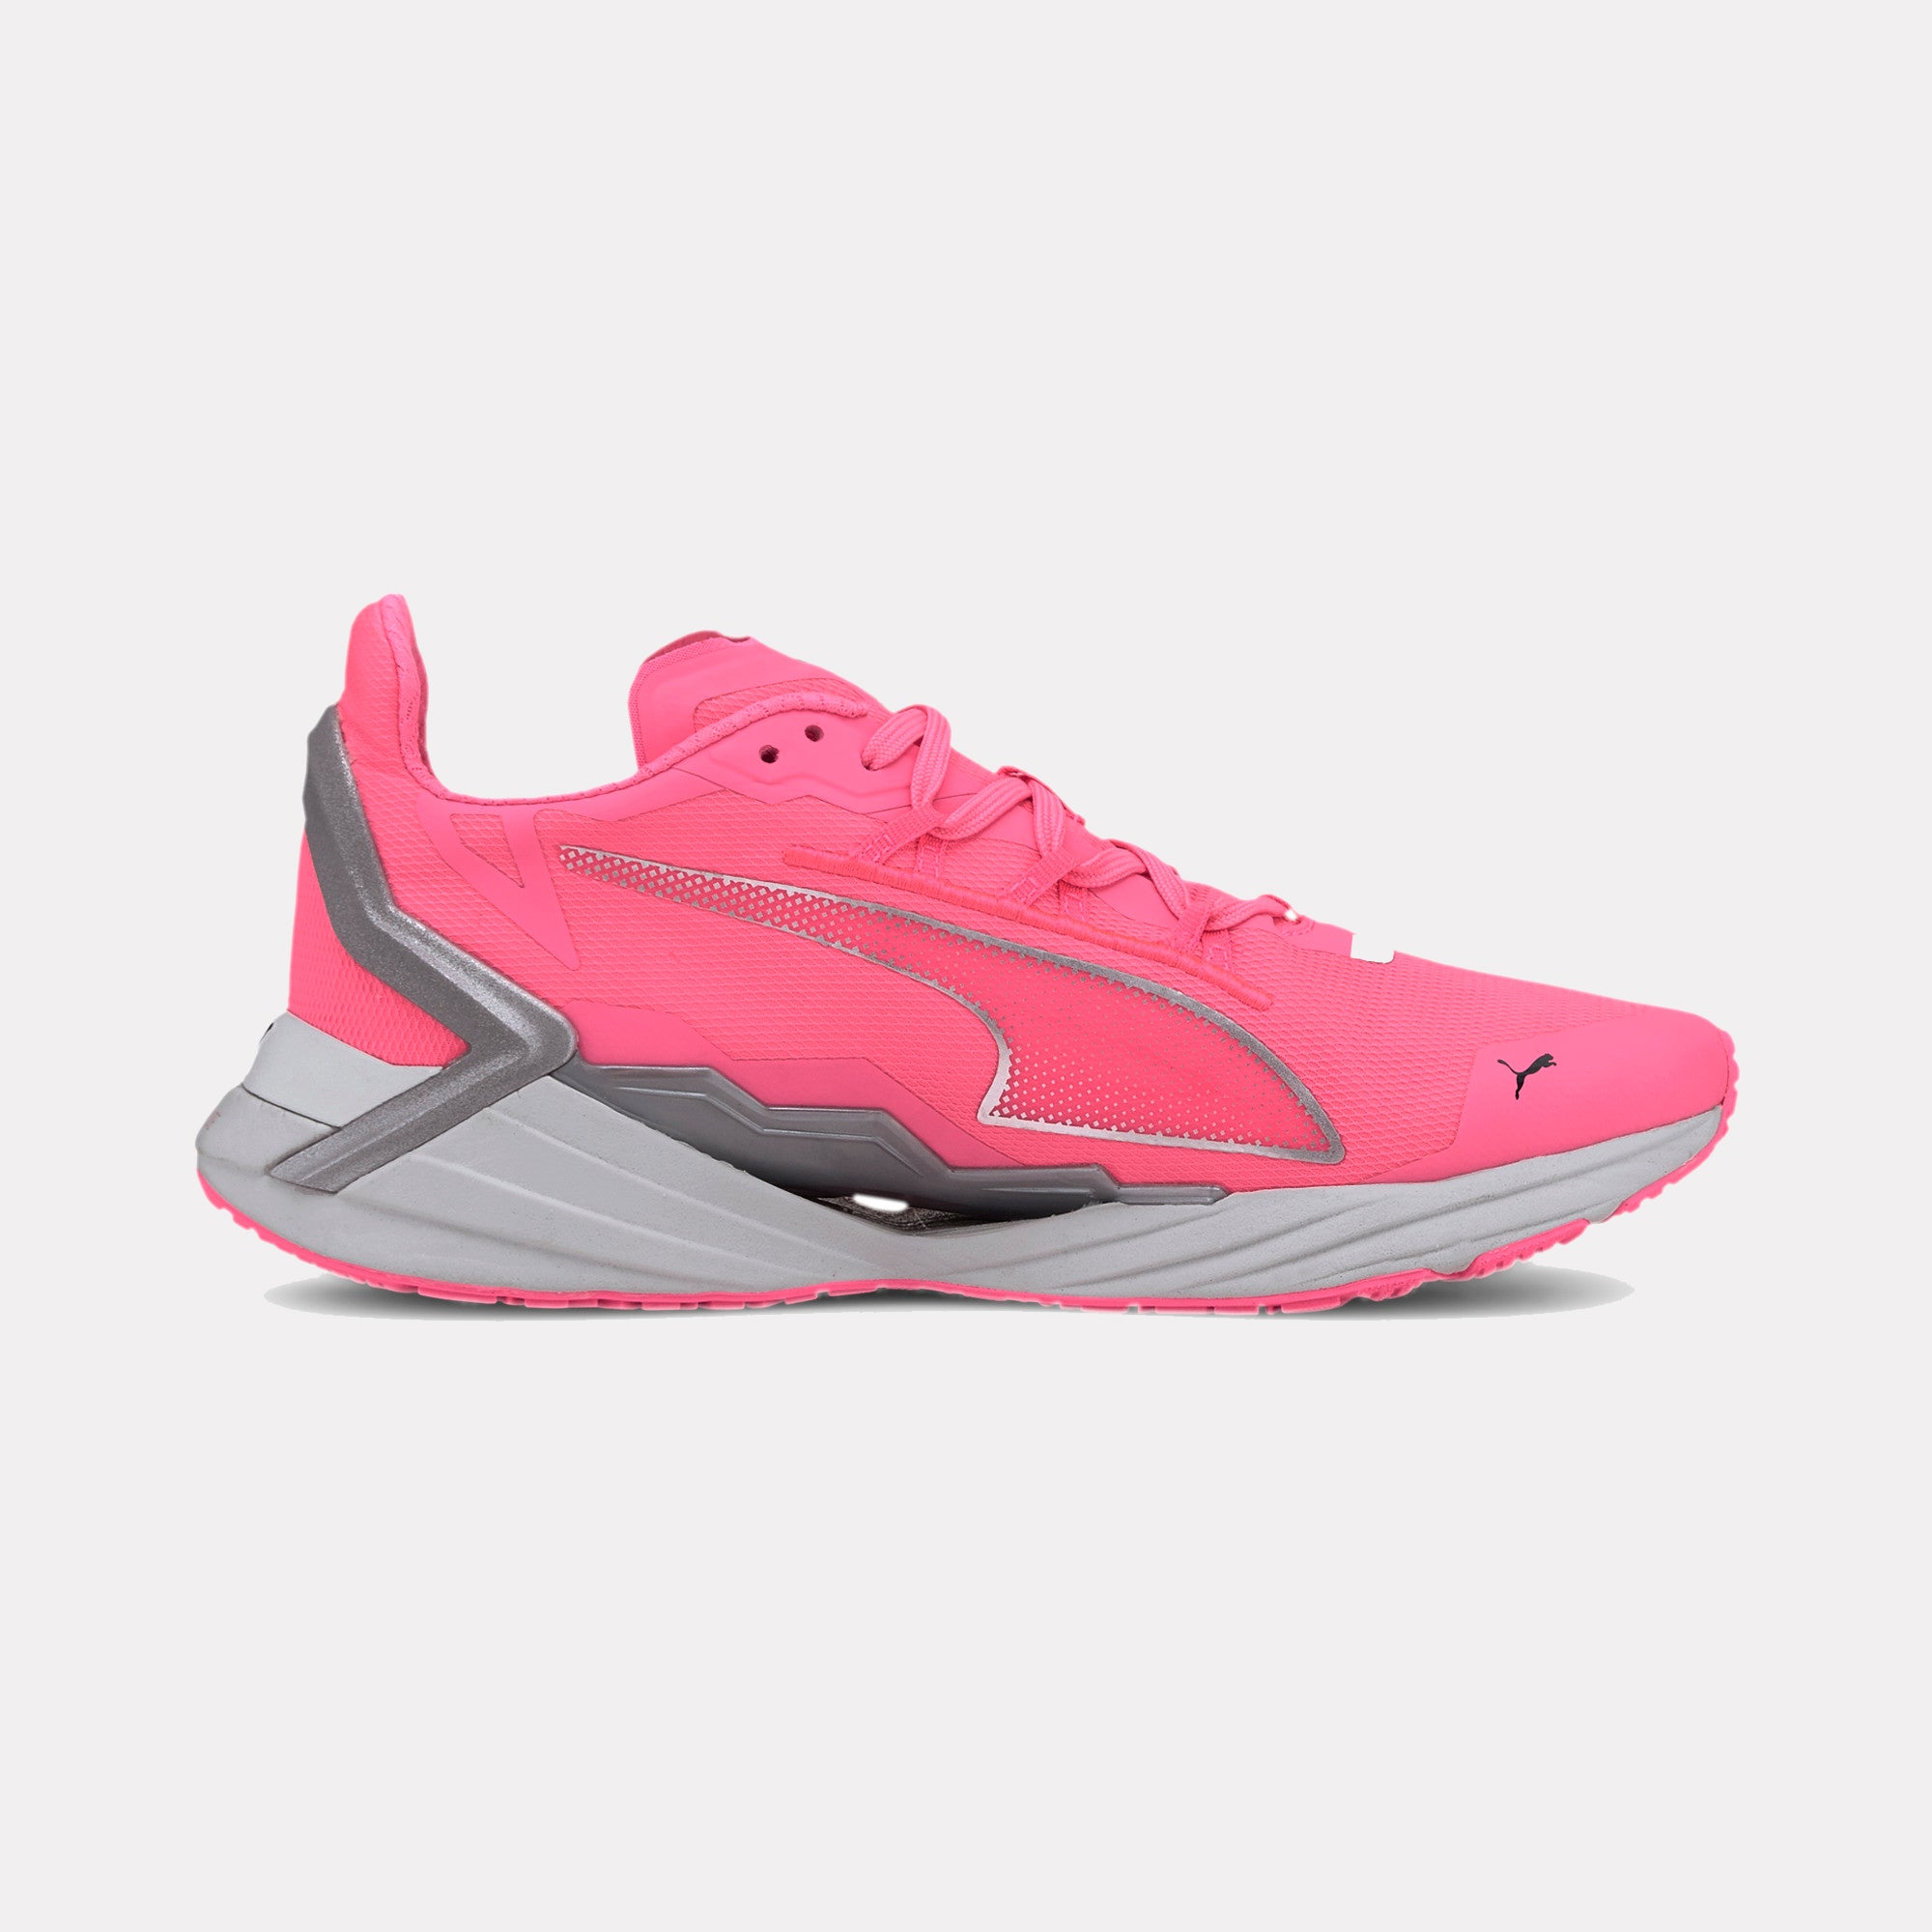 Puma Womens UltraRide Runner ID Shoe - Luminous Peach